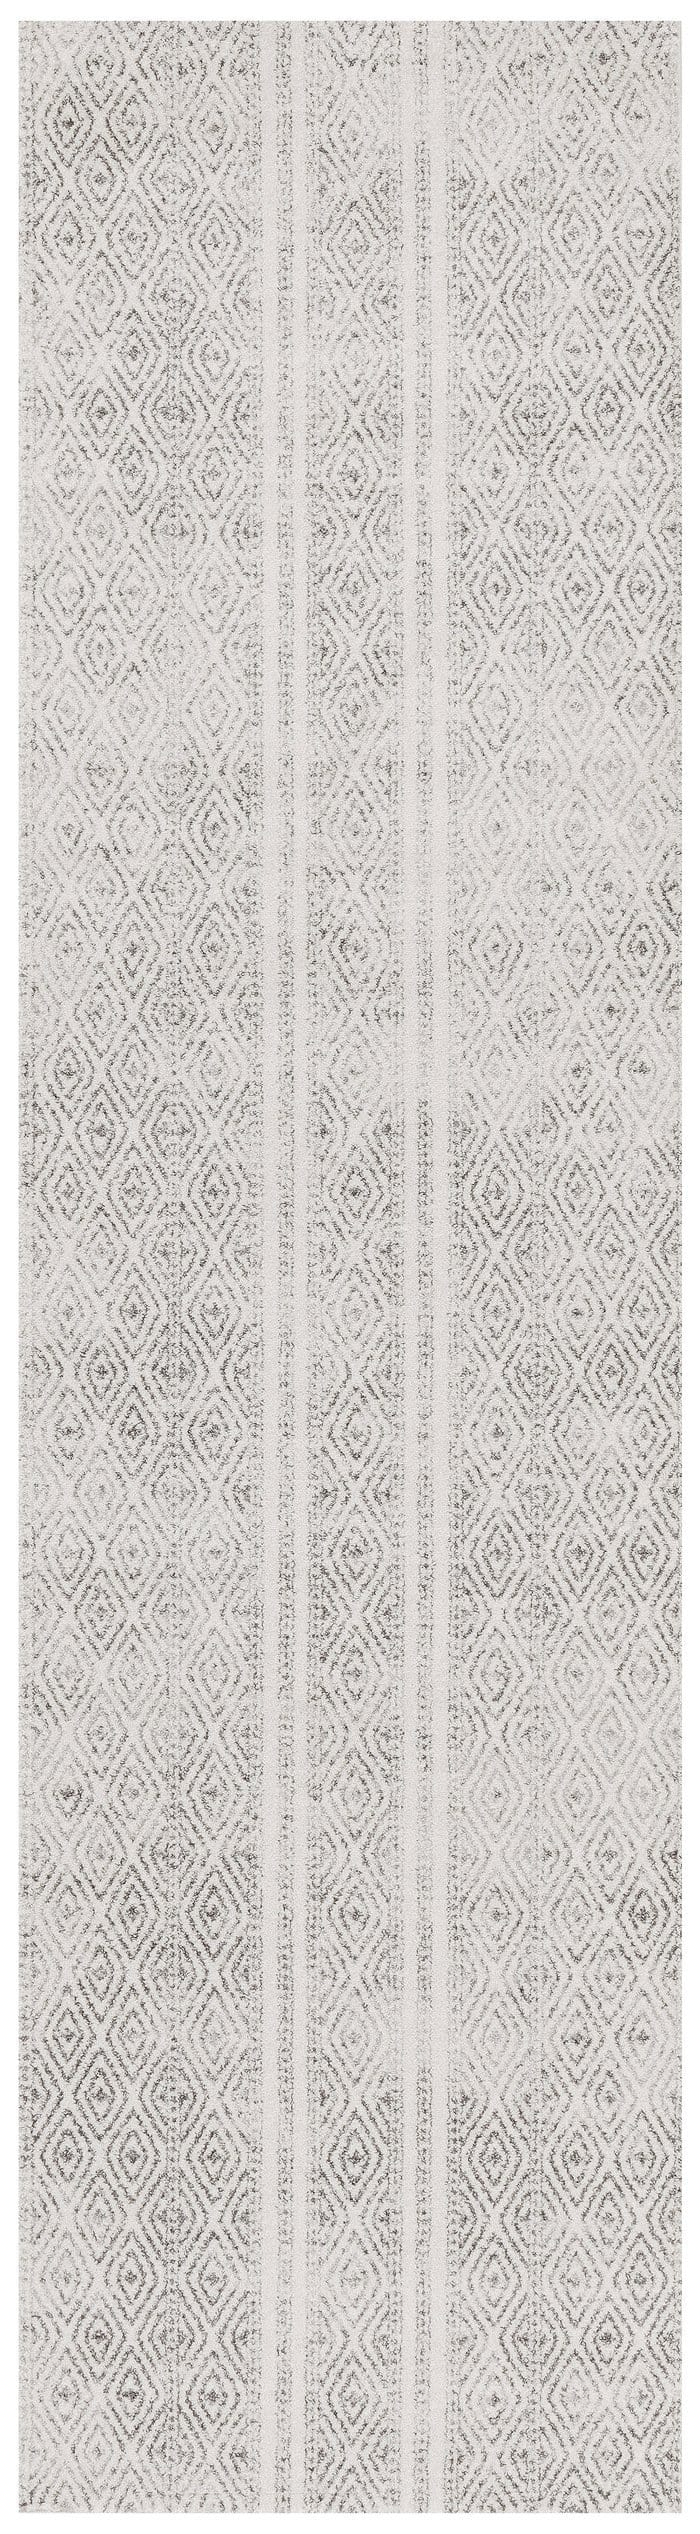 Moca Ivory & Grey Tribal Diamond Pattern Runner Rug